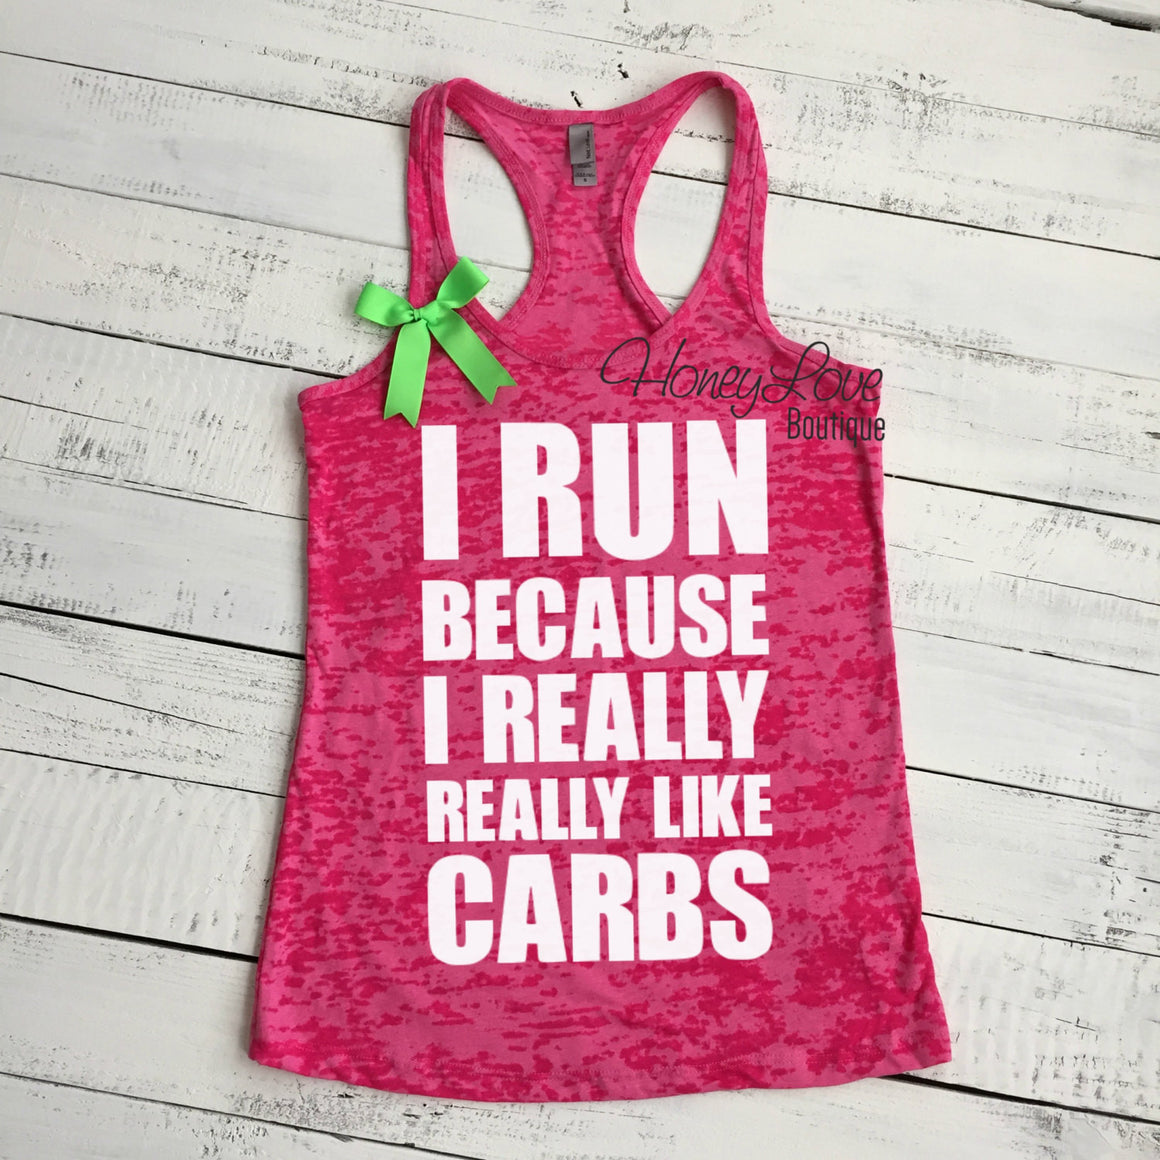 I run because I really really like CARBS